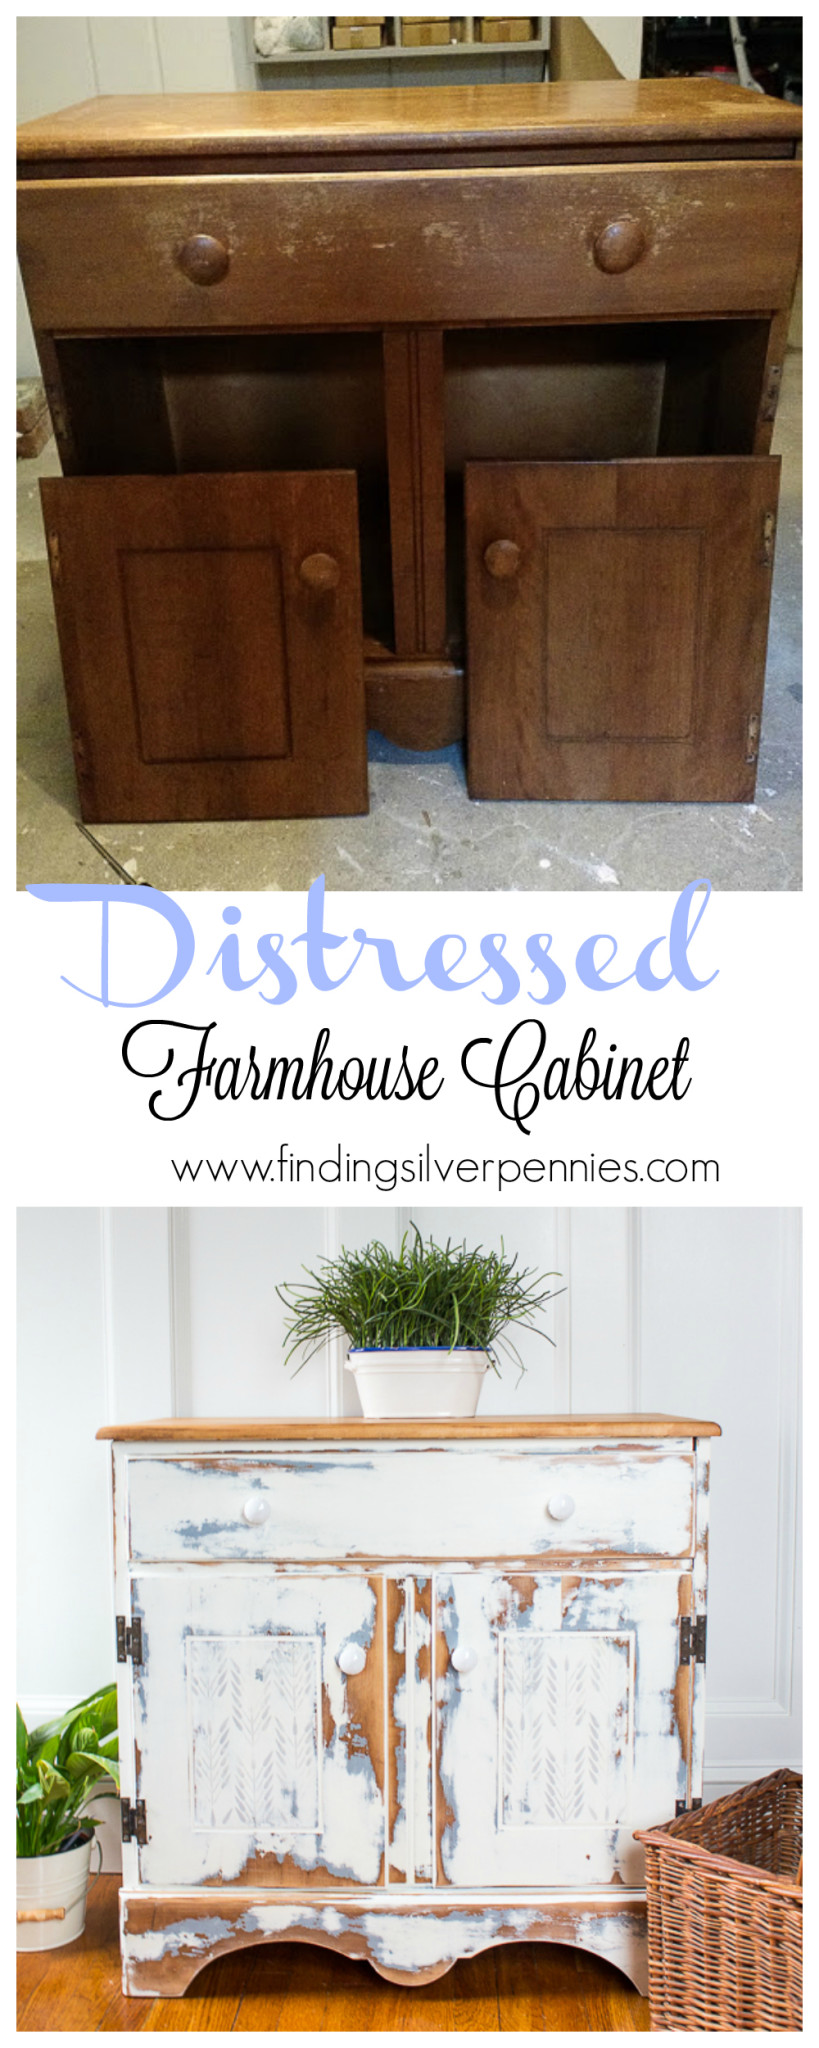 How to Make a Distressed Farmhouse Cabinet